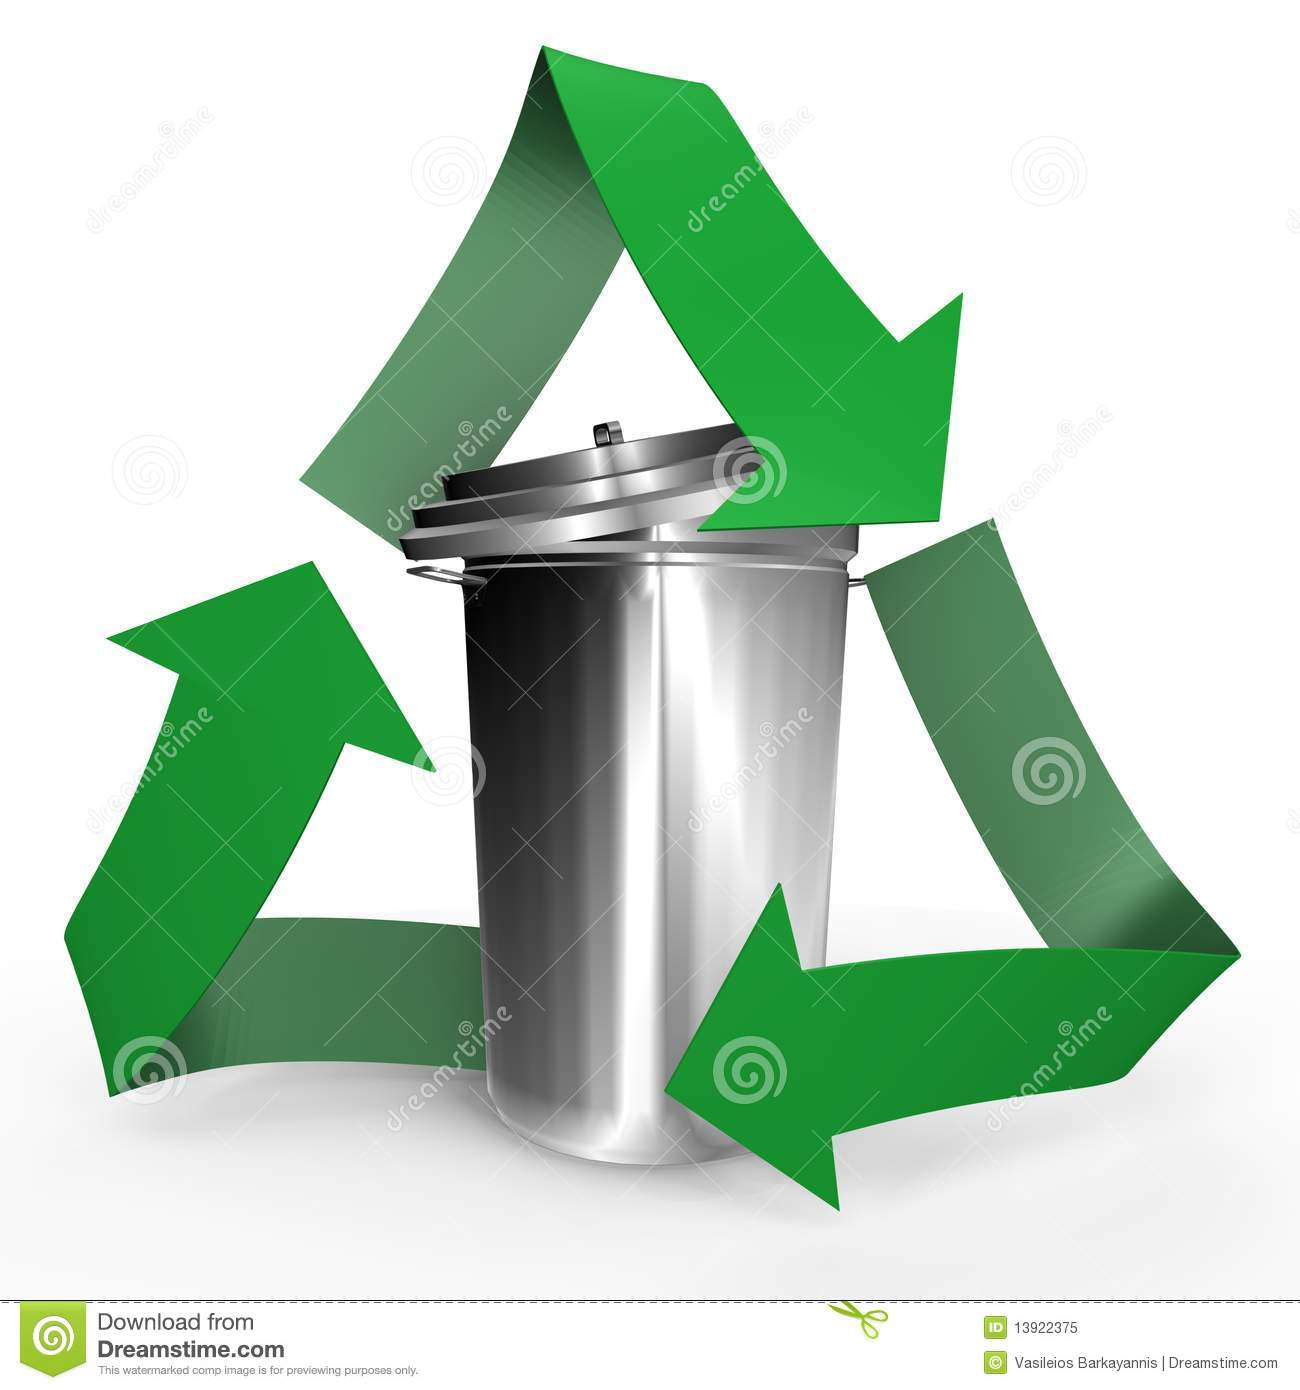 Trash Can Inside The Recycle Symbol A 3d Image Stock Illustration